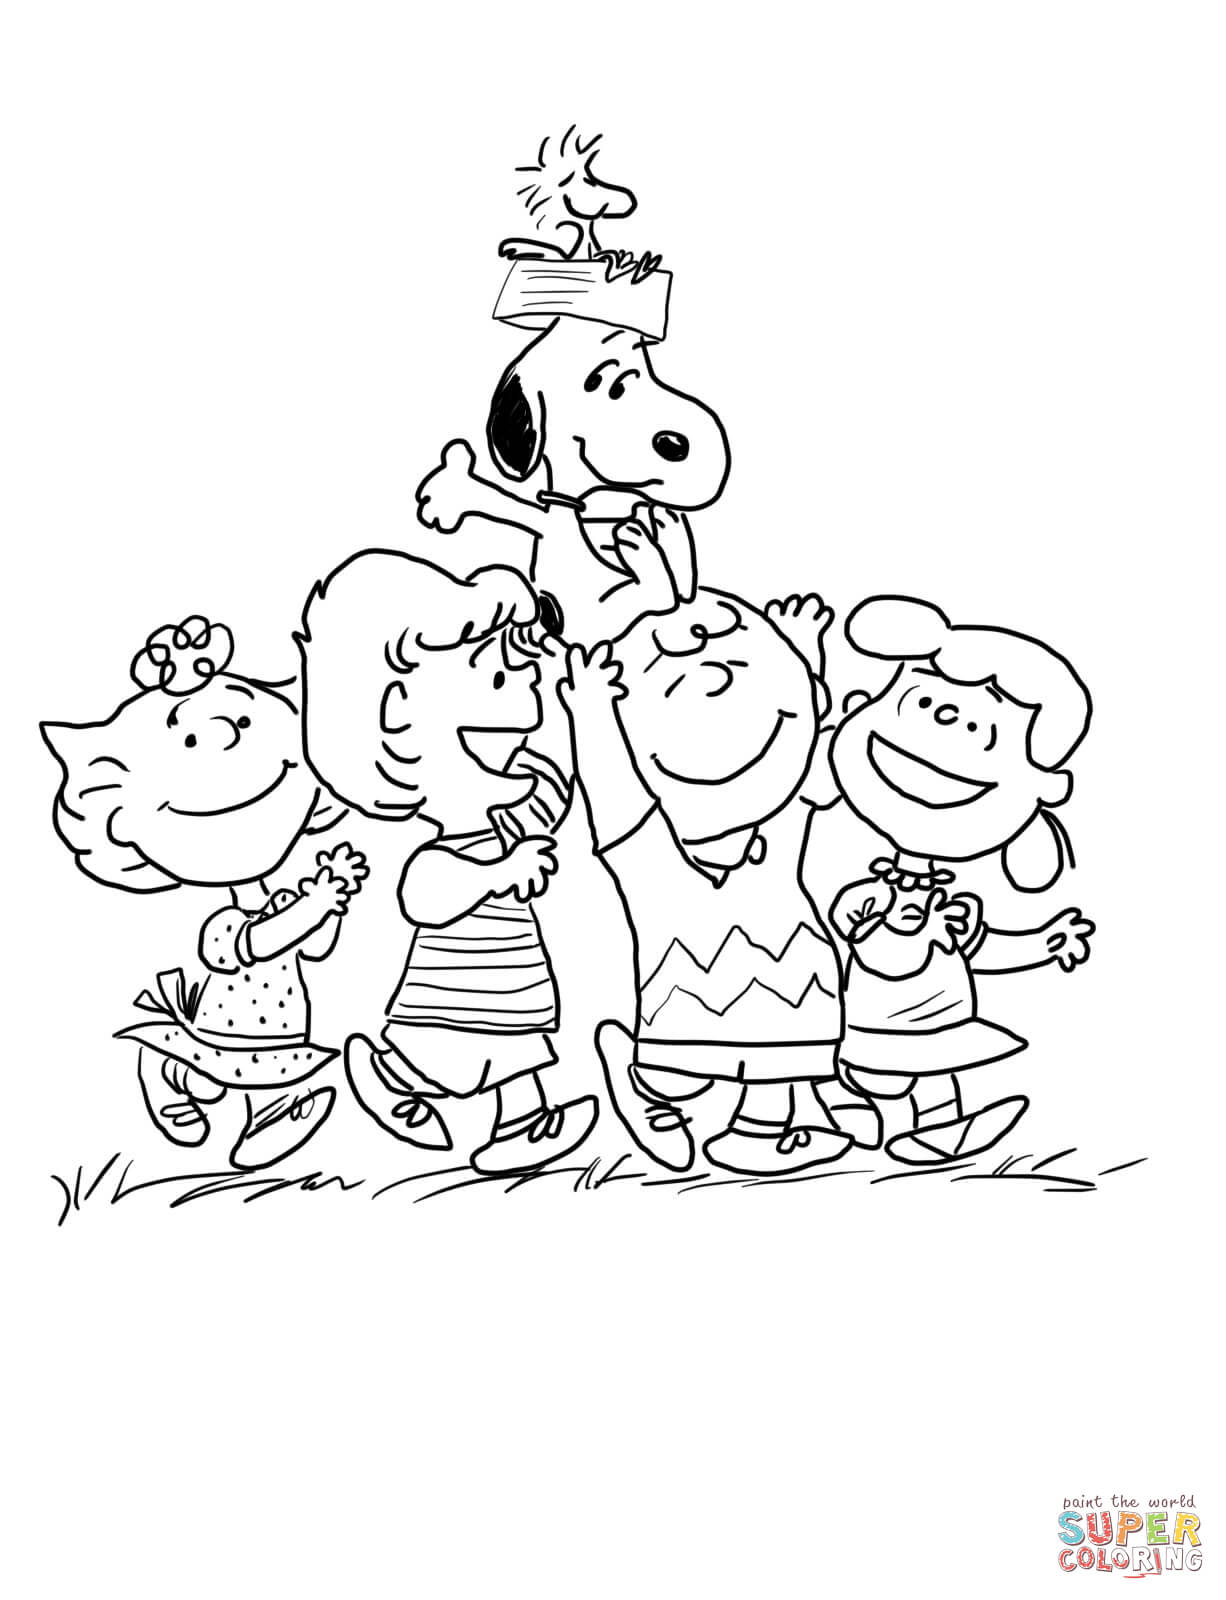 peanuts characters coloring pages peanuts characters coloring page free printable coloring coloring pages characters peanuts